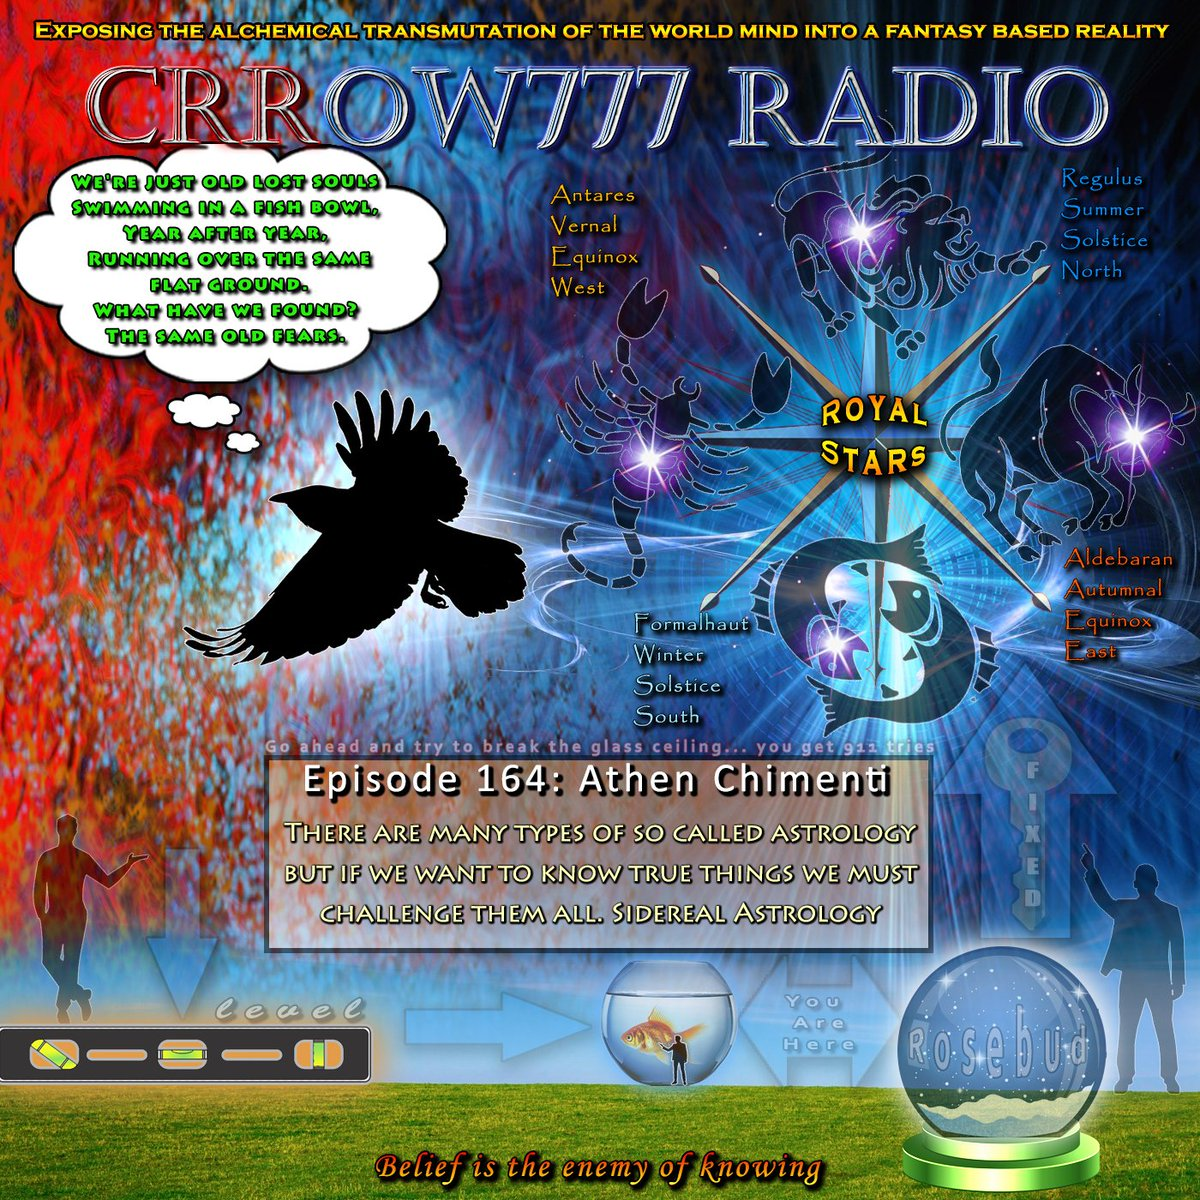 For me this is an important episode. I hope to exist not wearing diapers at some point in this life - Episode 164 http://Crrow777Radio.com